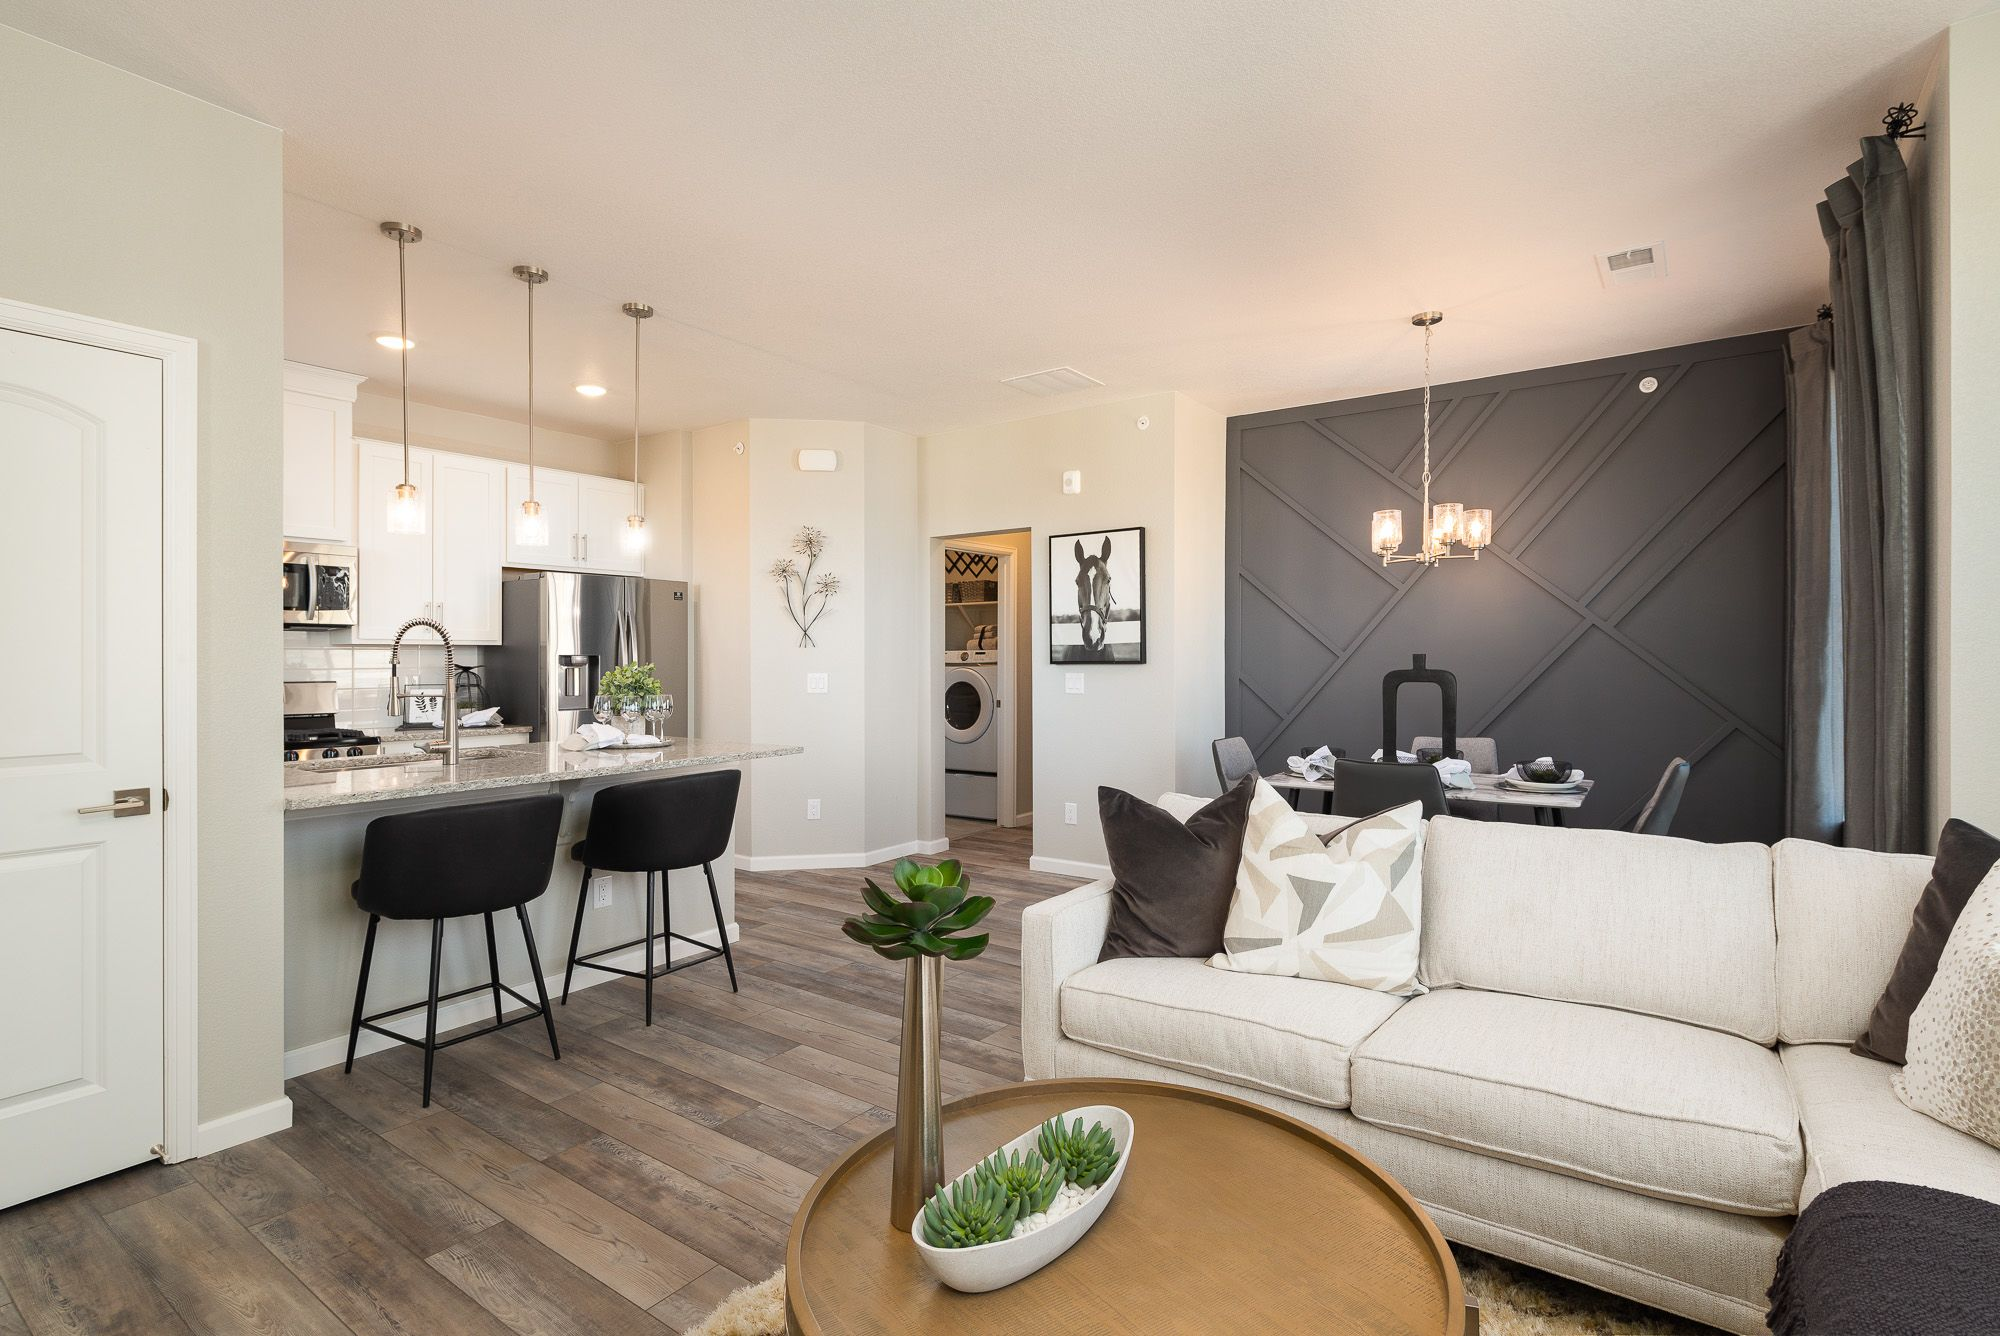 Living Area featured in the Aiden By Lokal Homes in Denver, CO